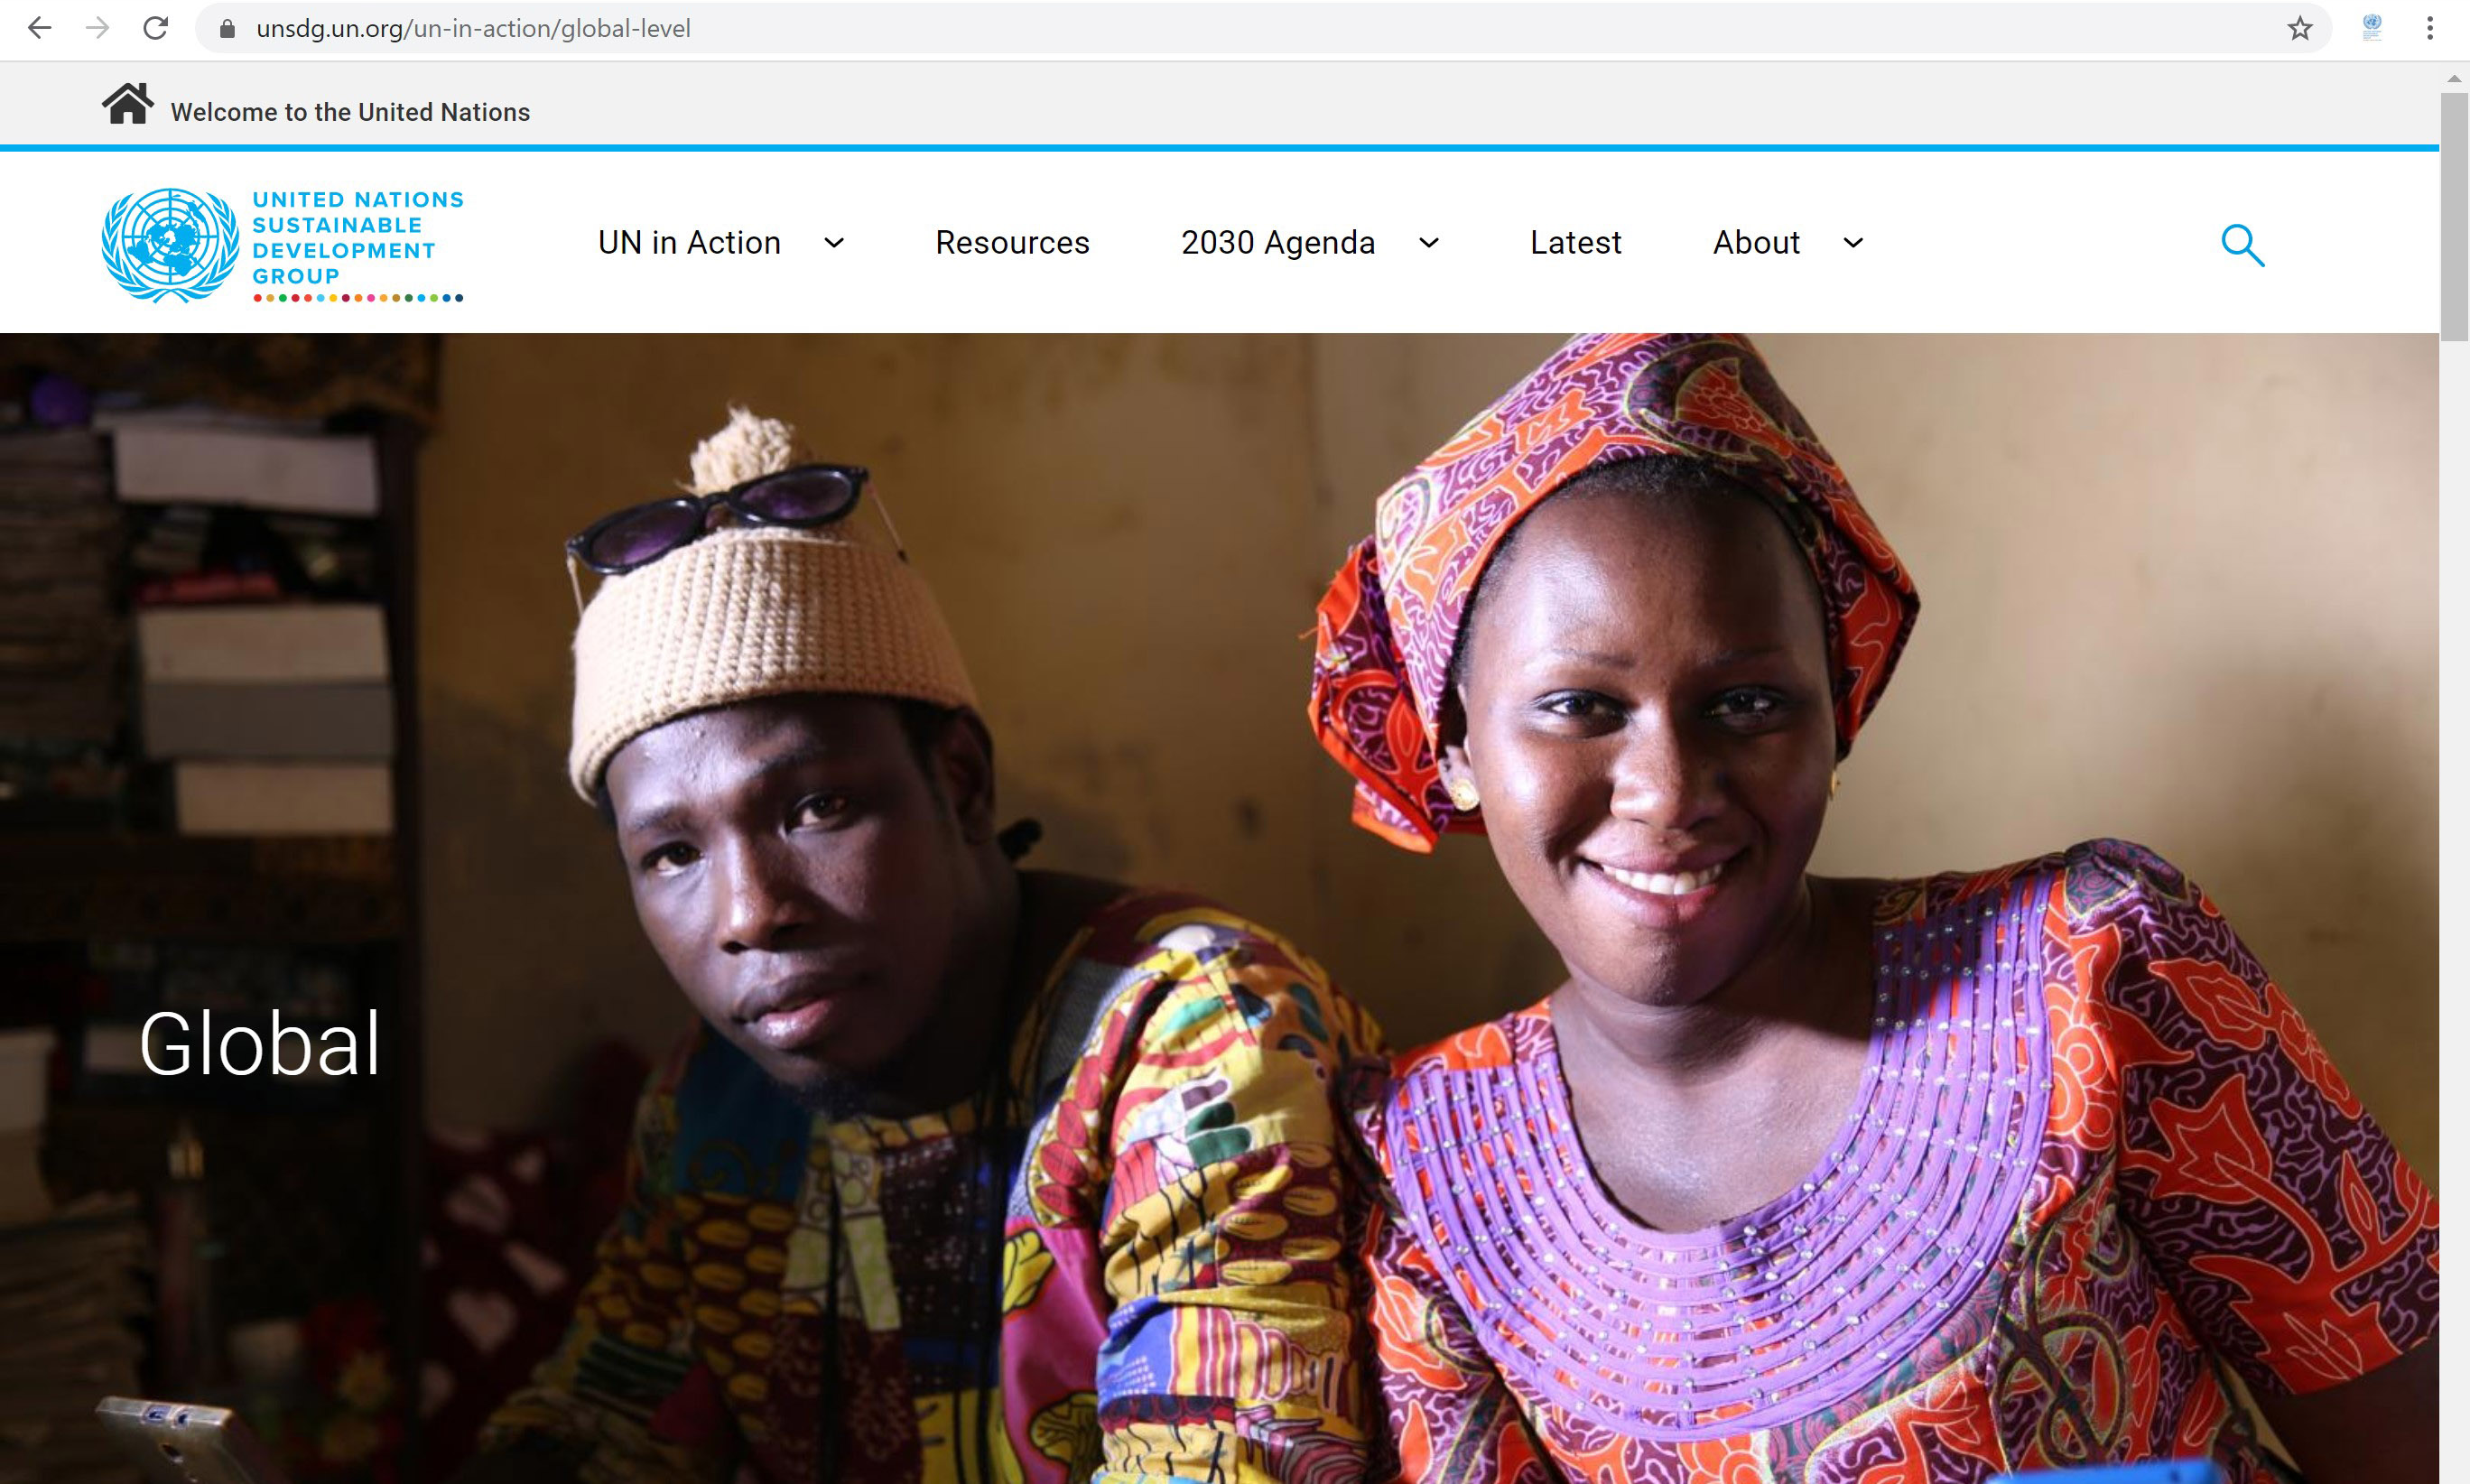 Screenshot of the UN in Action page on the UNSDG global website